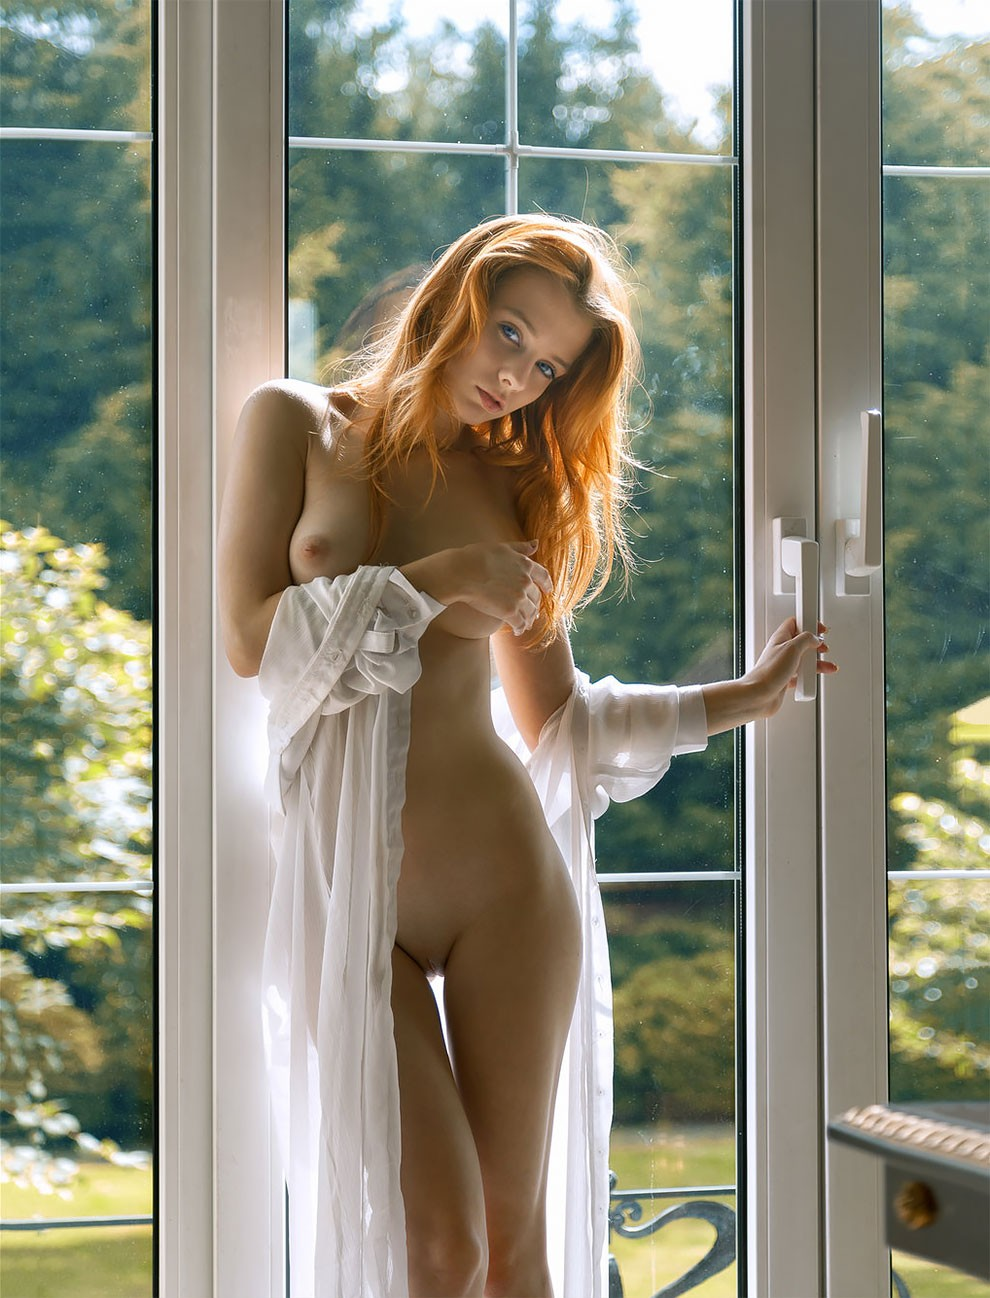 professional-russian-photographer-pavel-kiselev-captures-sensual-nsfw-female-pictures-34.jpg